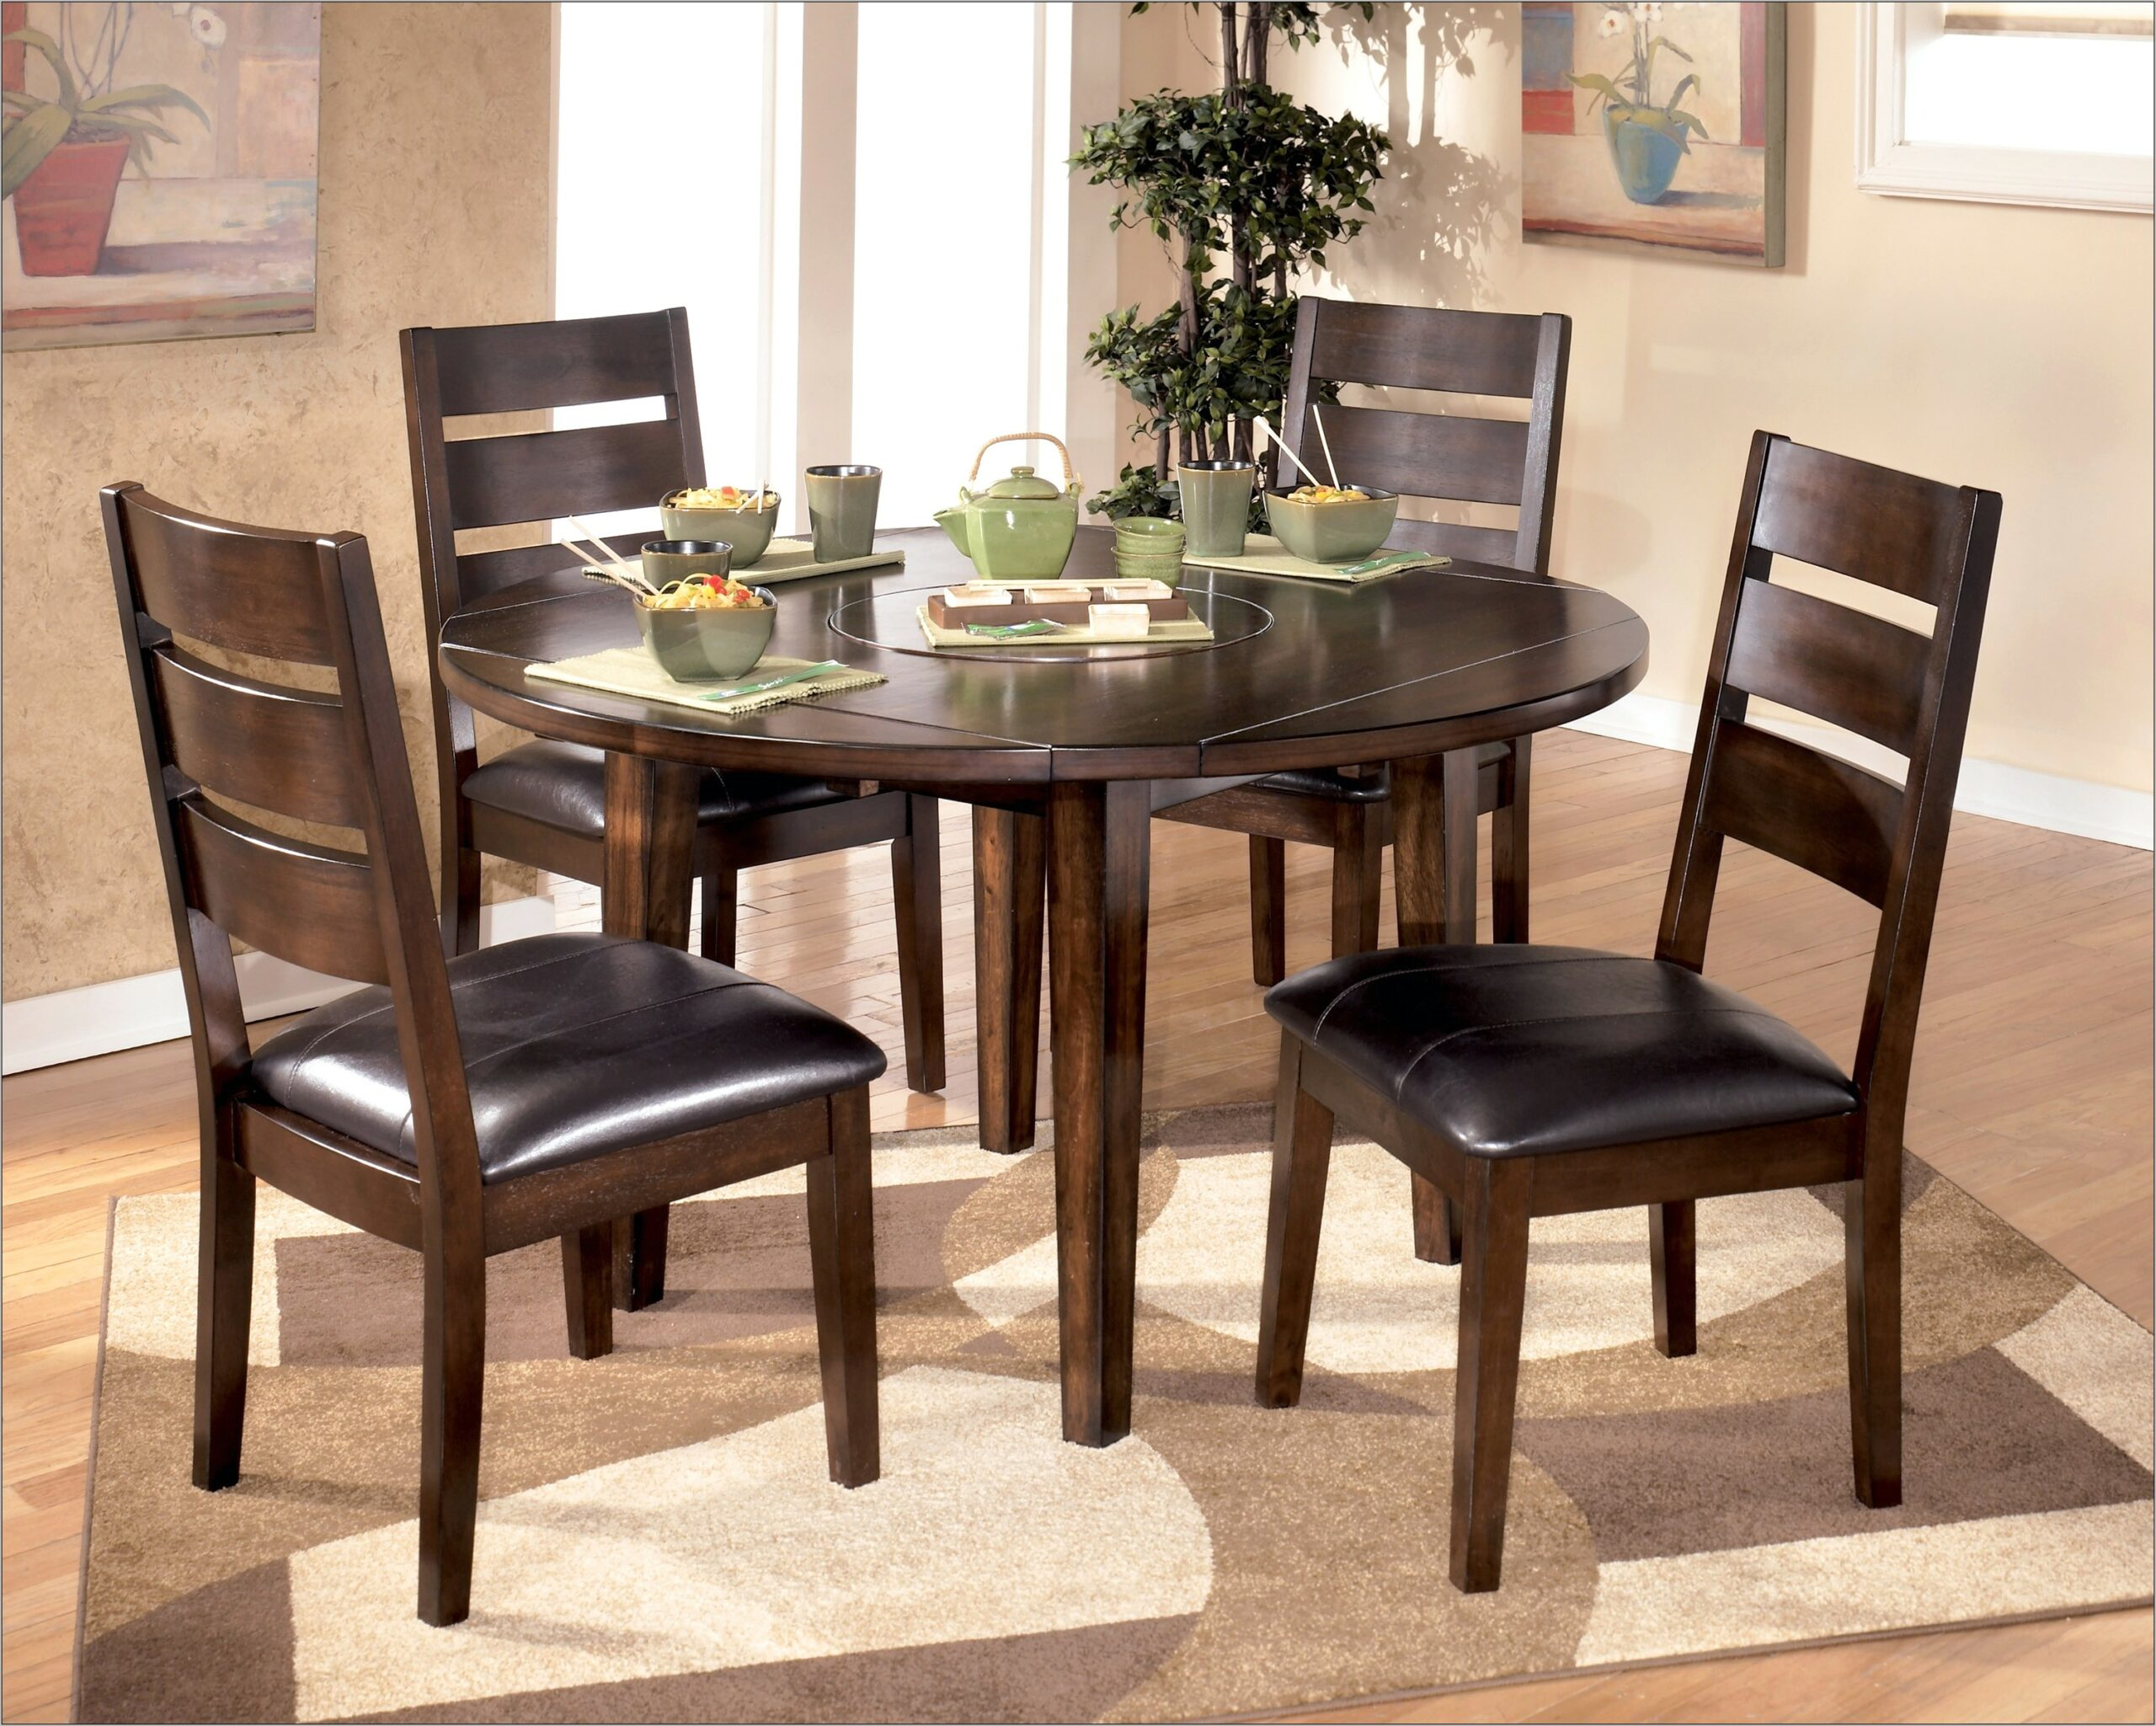 Decorating Small Dining Room With Round Table